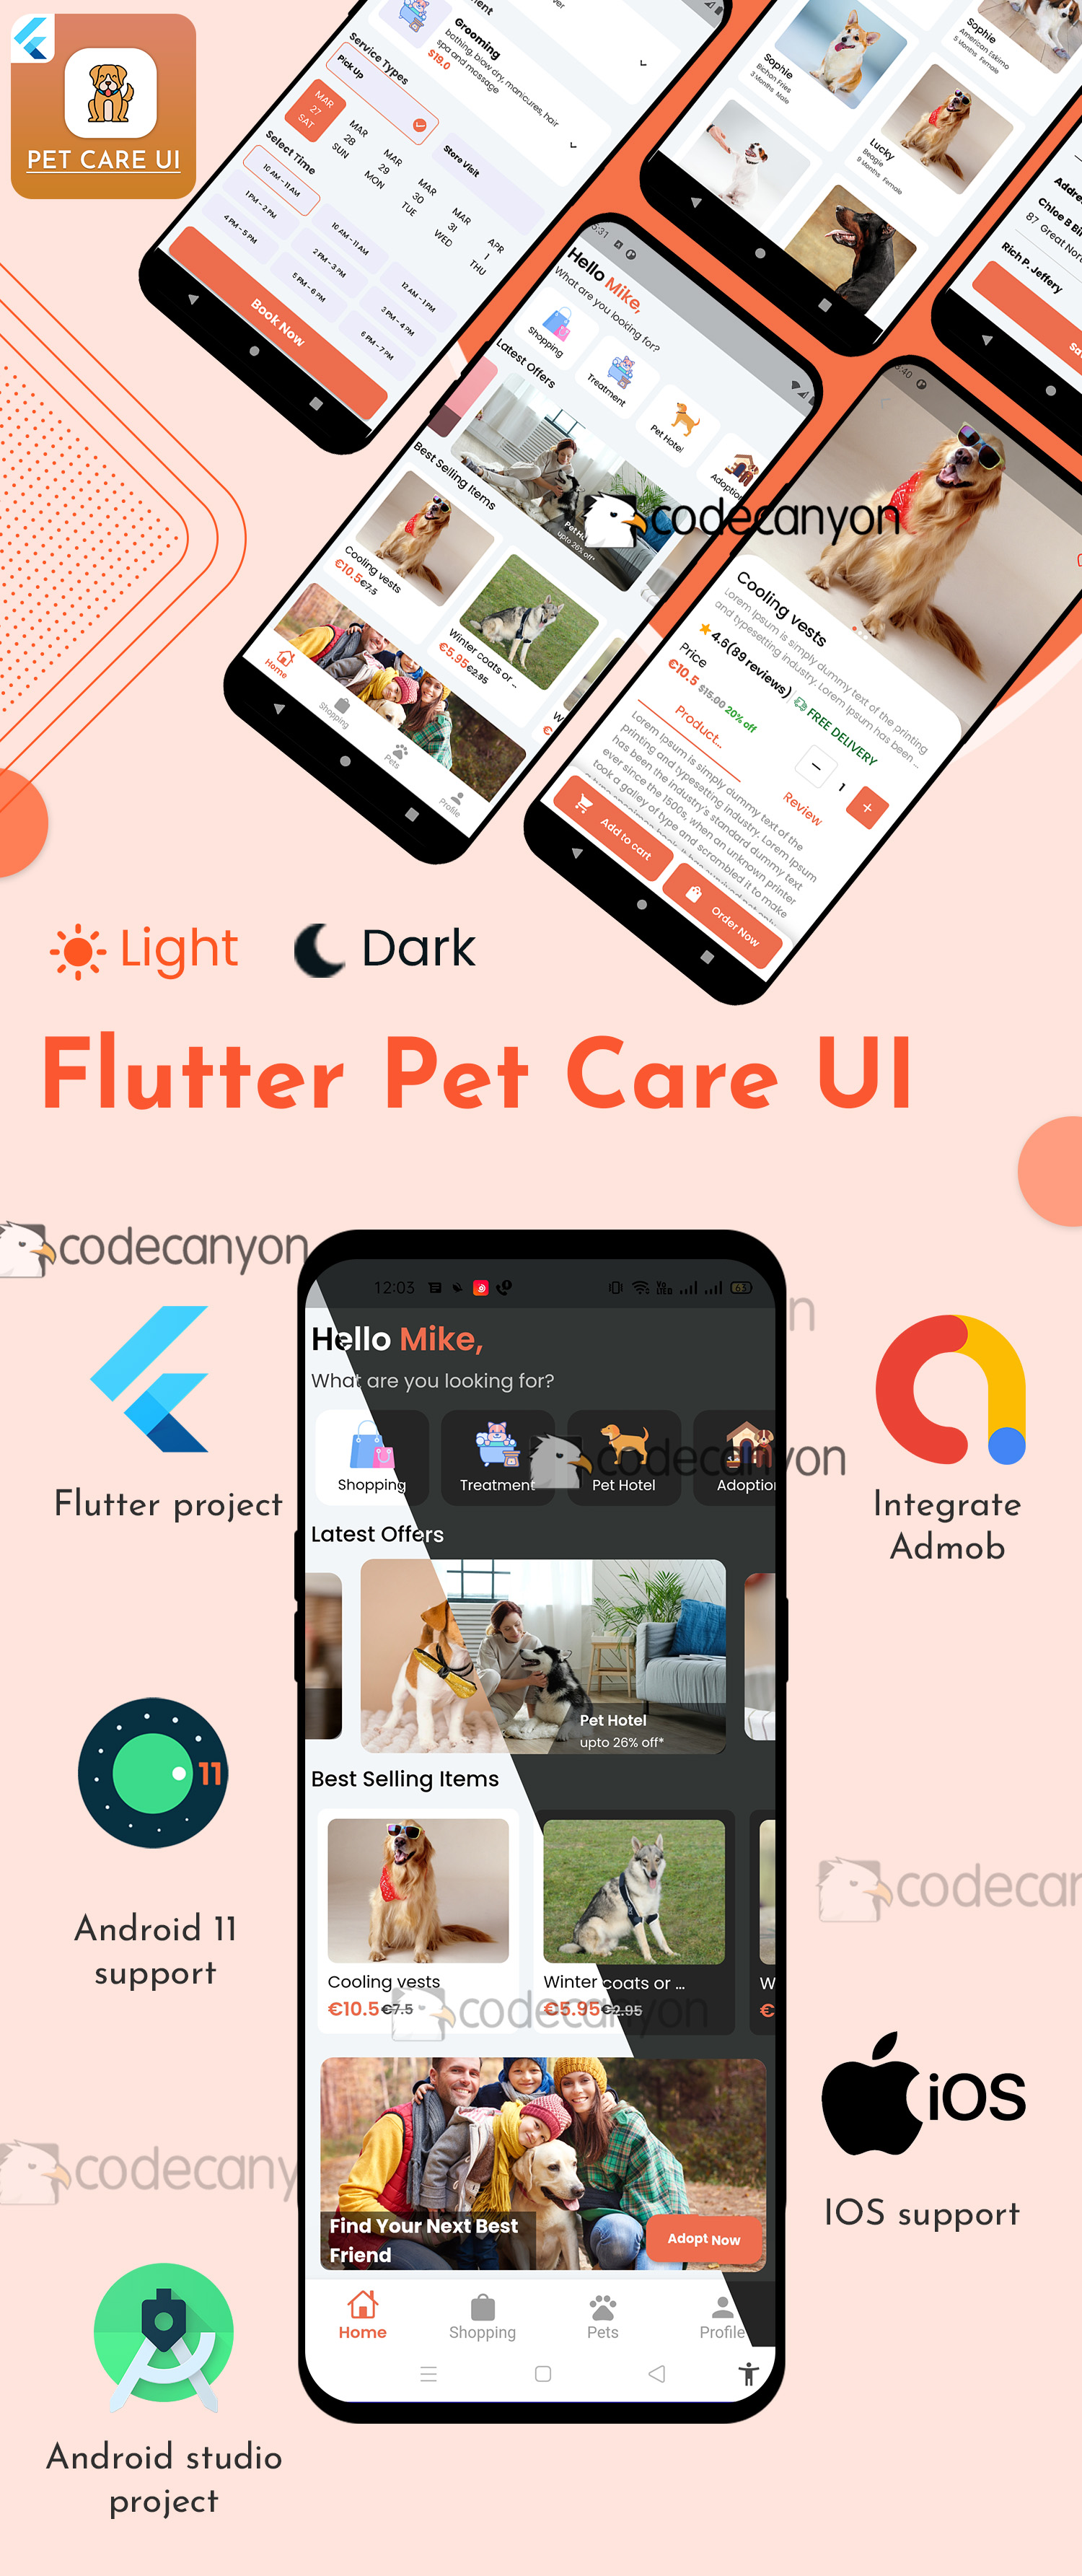 Flutter Pet Care | Adoption Pet | Hotel Booking | Treatment | Shopping | UI Kit template - 5